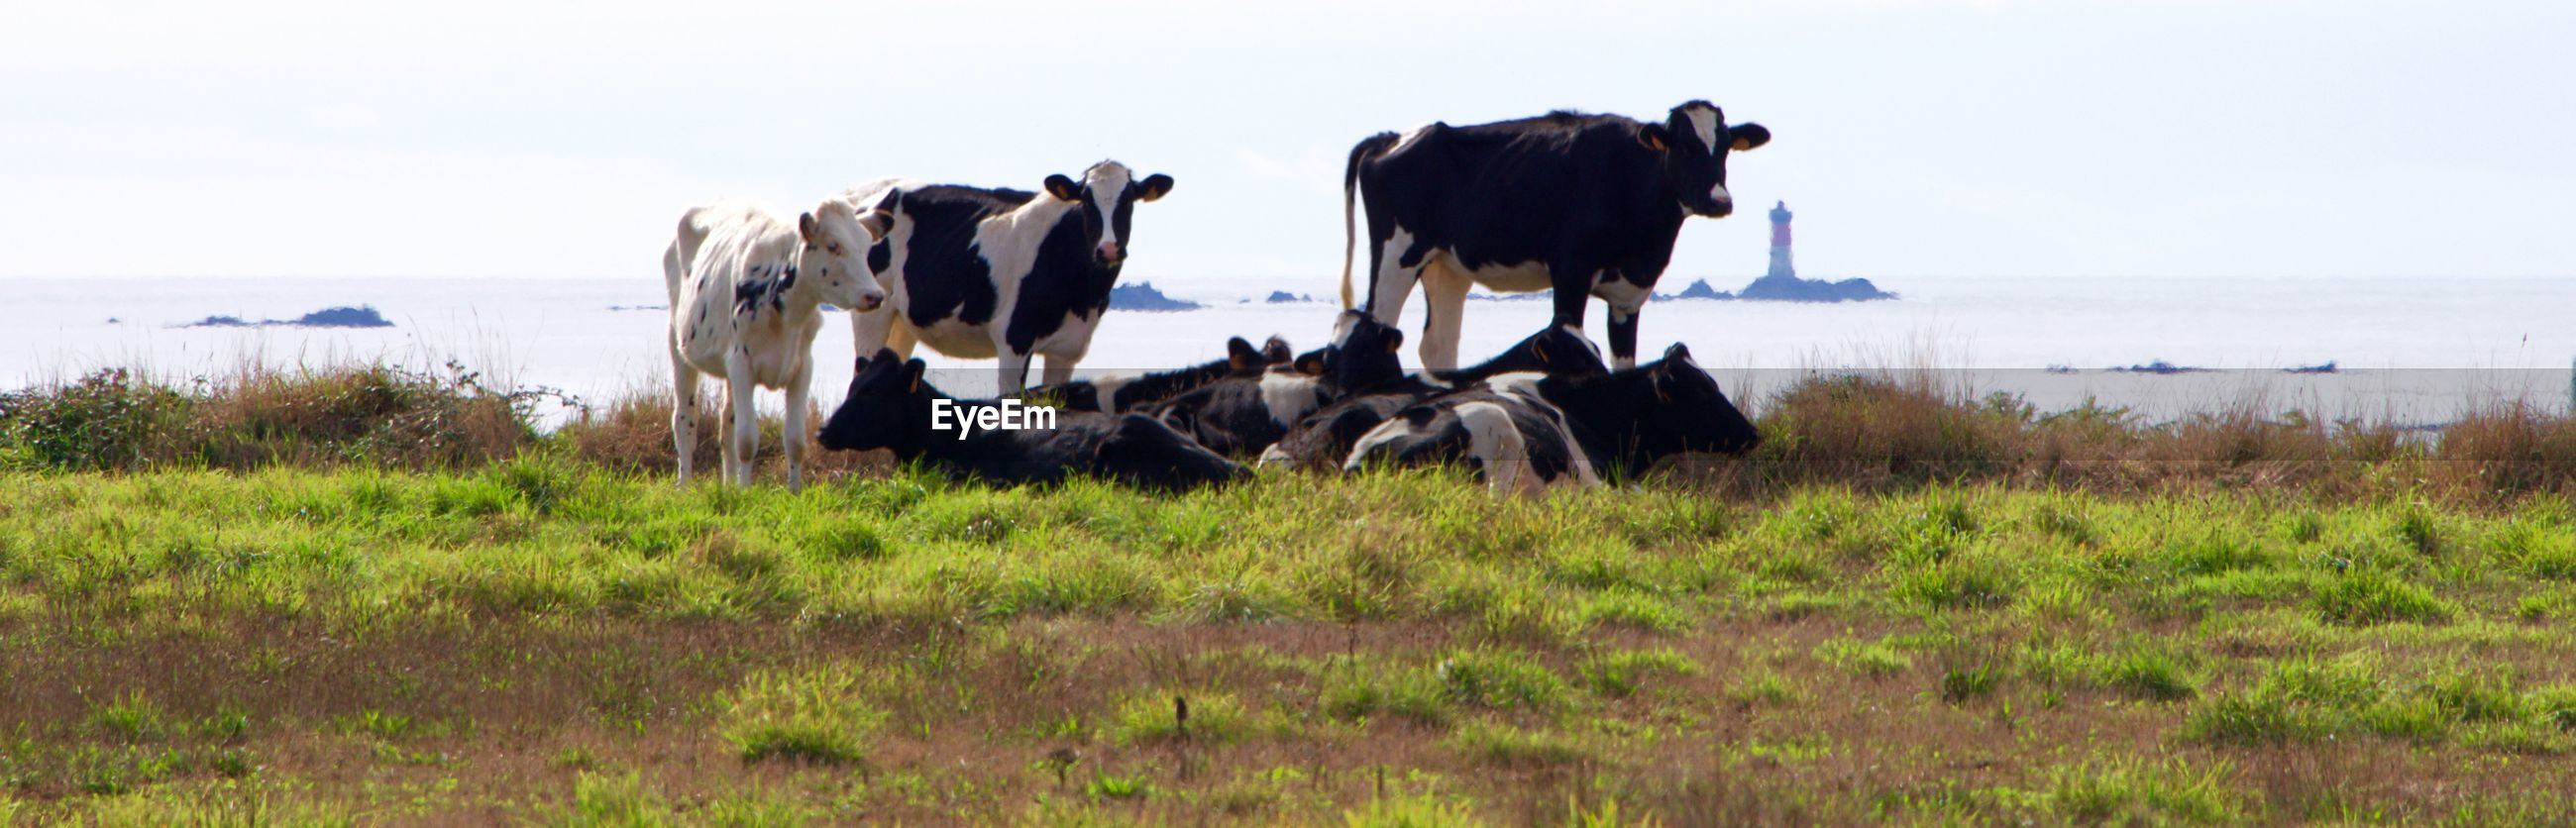 Panoramic shot of cows on field by sea against clear sky